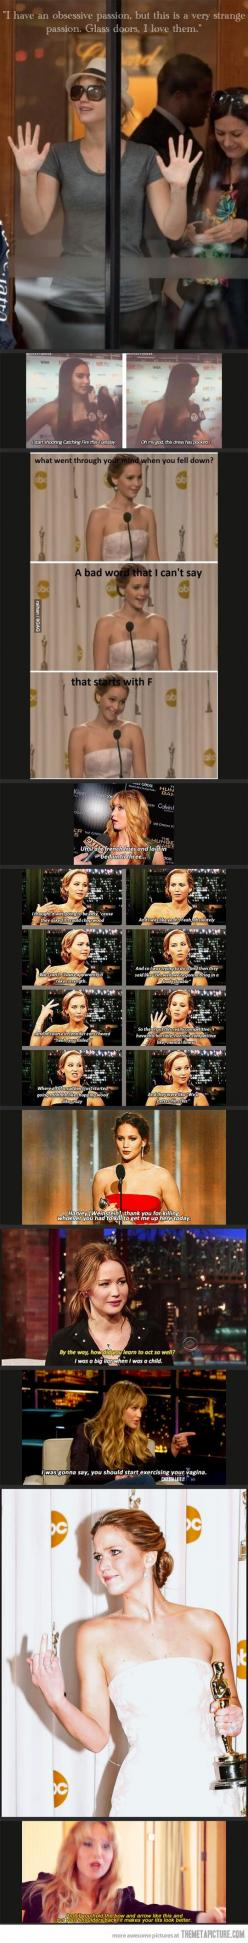 jennifer lawrence: Jennifer Lawerence, Giggle, Best Friends, Funny Stuff, Jenniferlawrence, J Law, Jennifer Lawrence